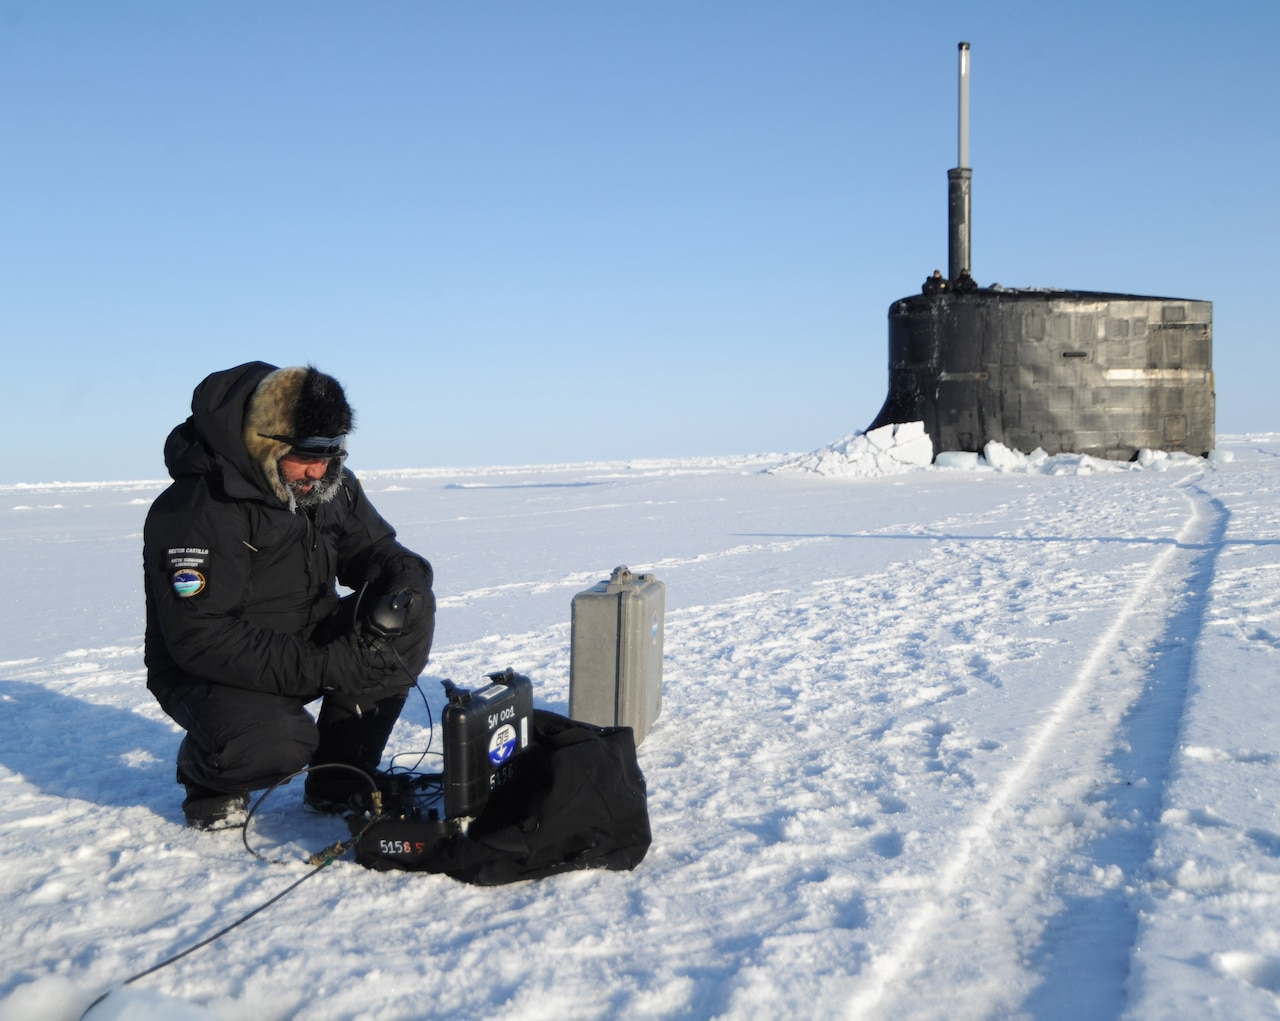 A sailor kneels on ice in front of a submarine.